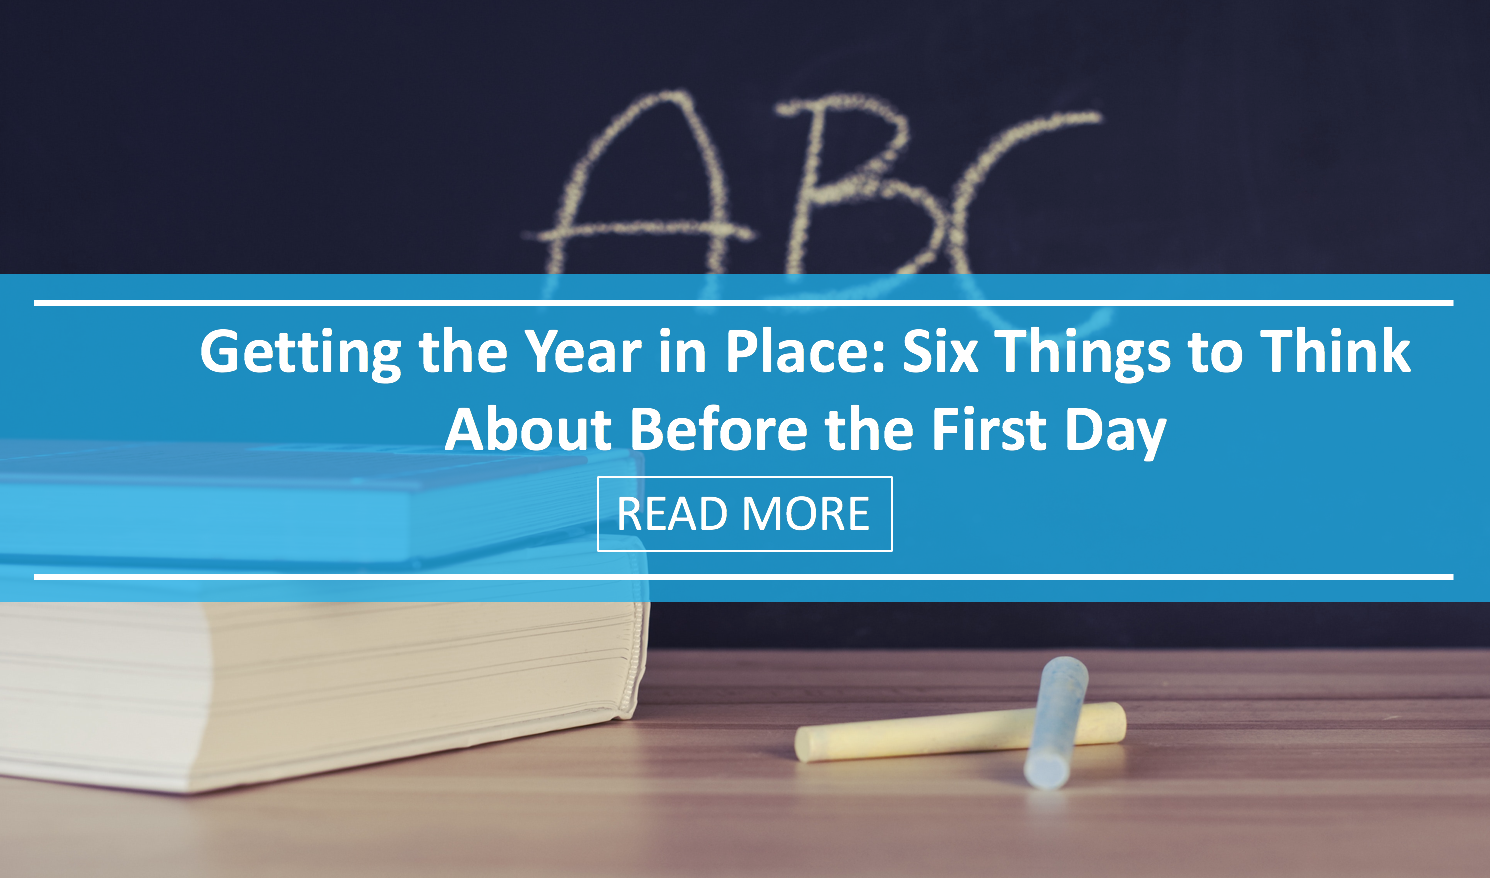 Getting the Year in Place: Six Things to Think about Before the First Day